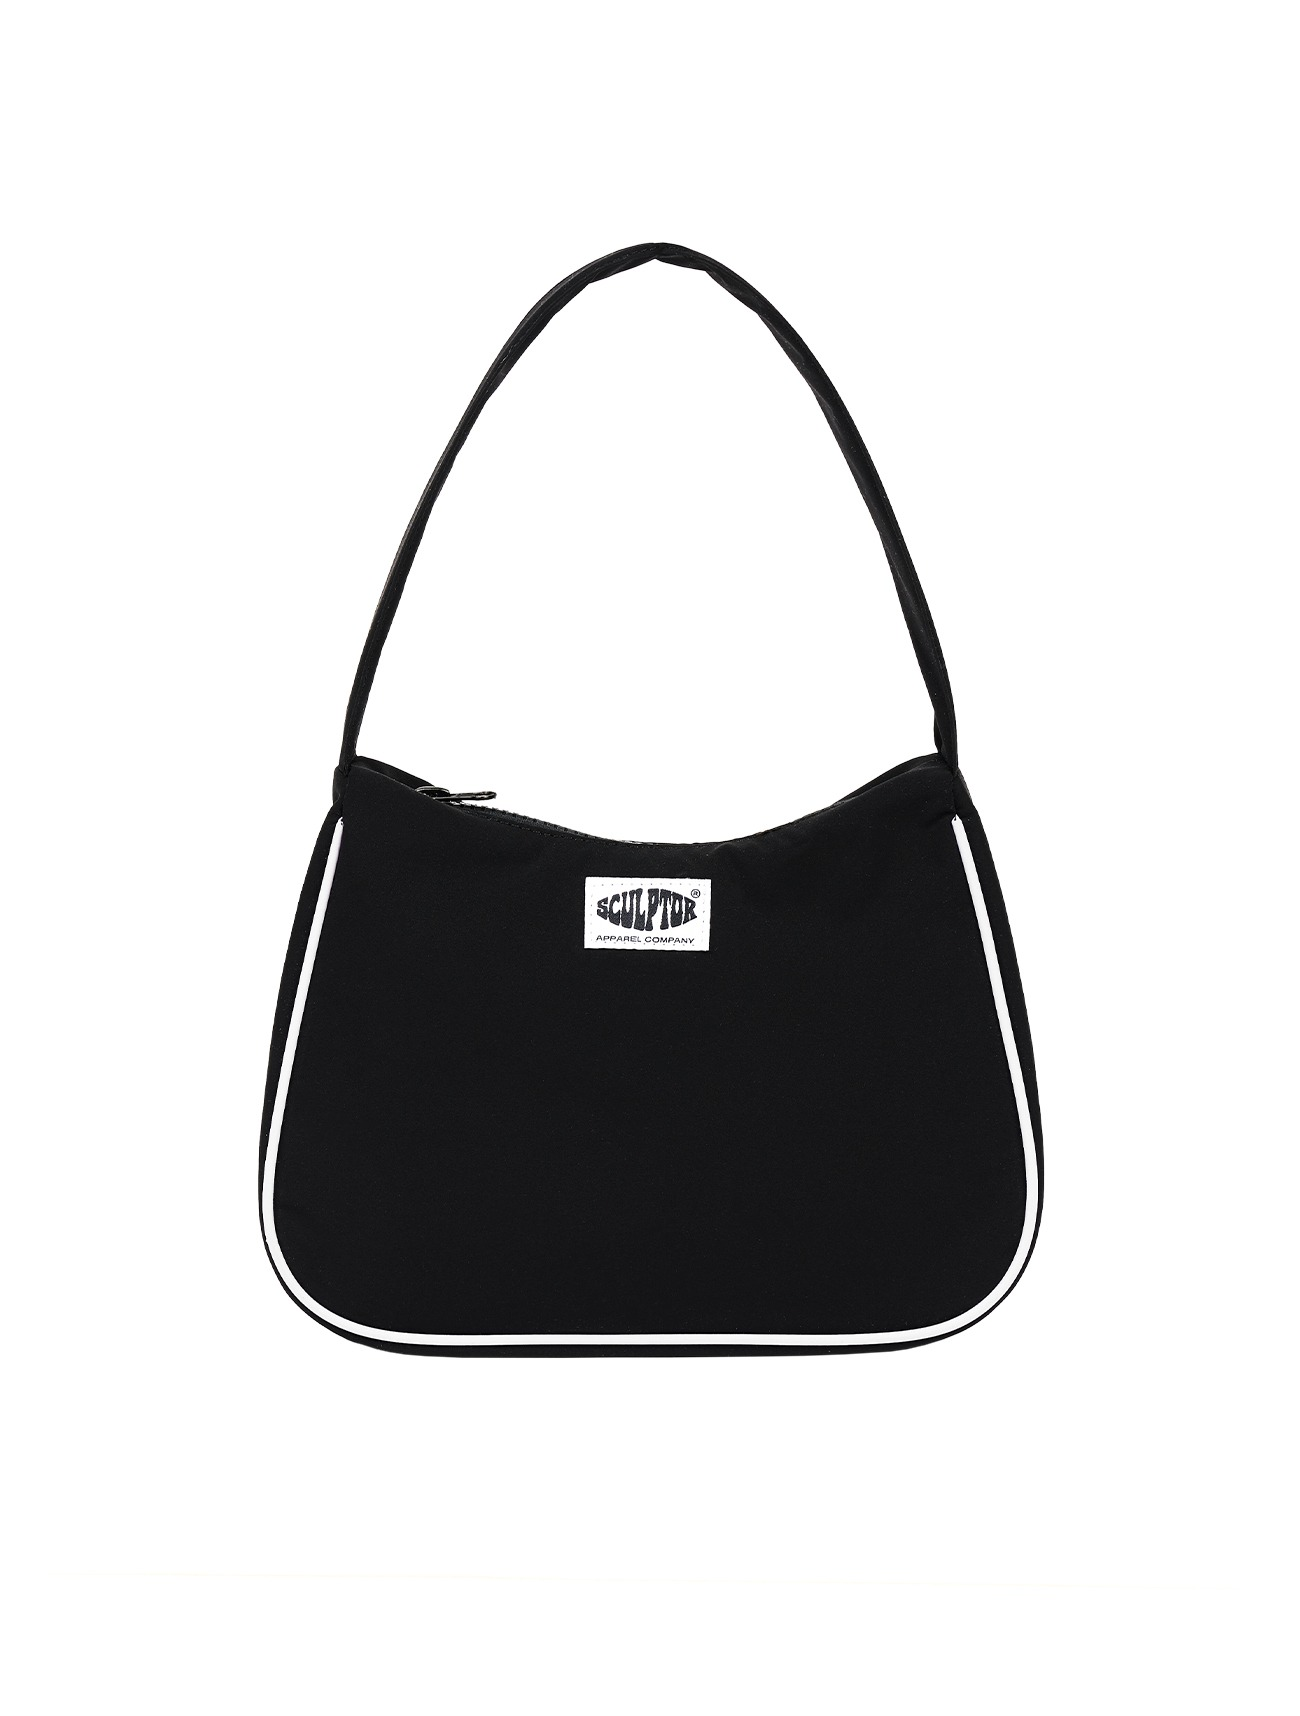 Satin Tote Bag Black